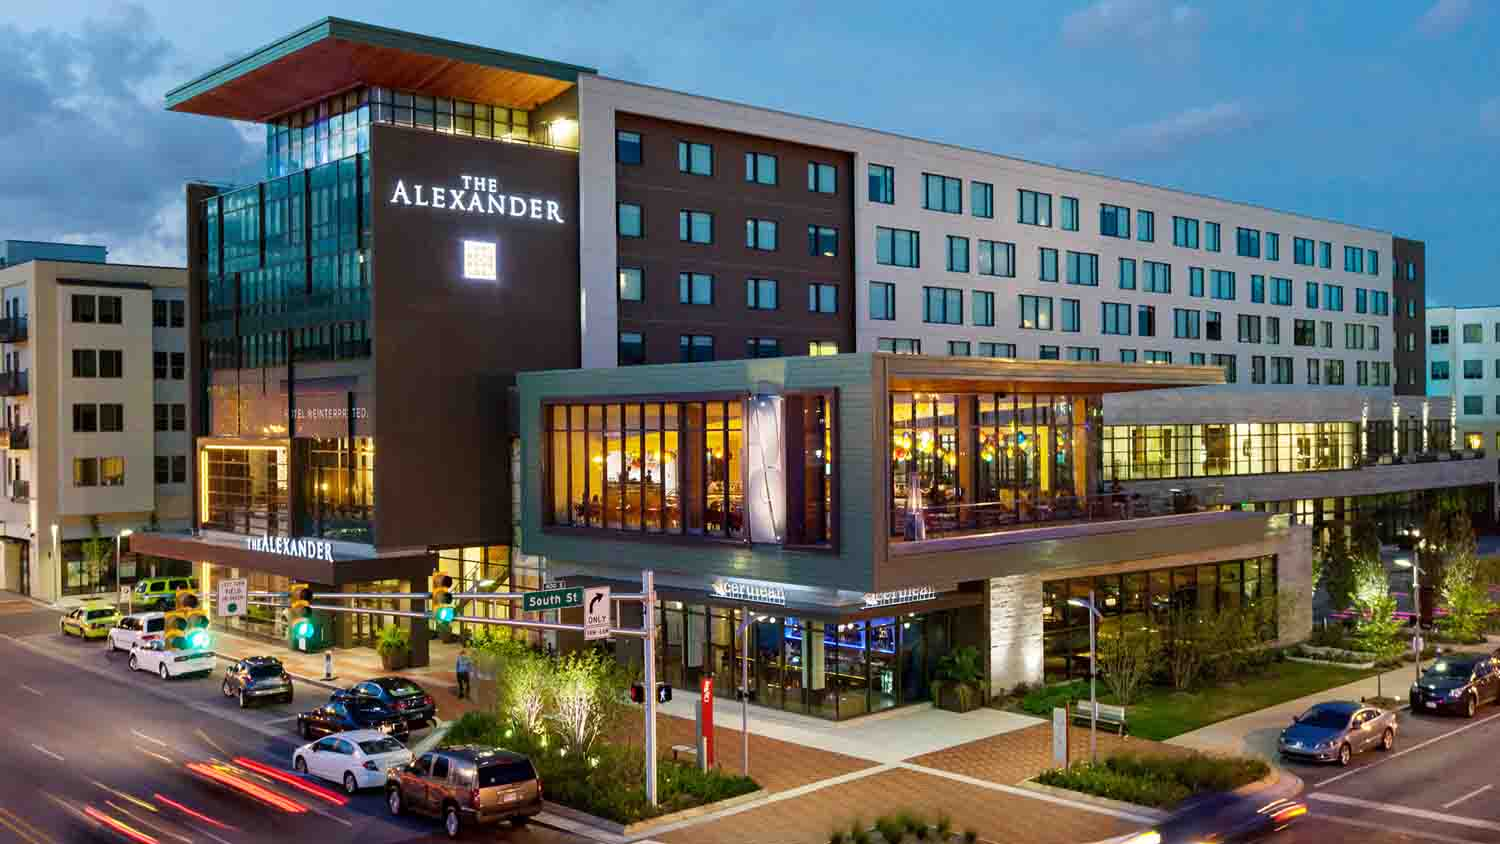 The alexander hotel 1